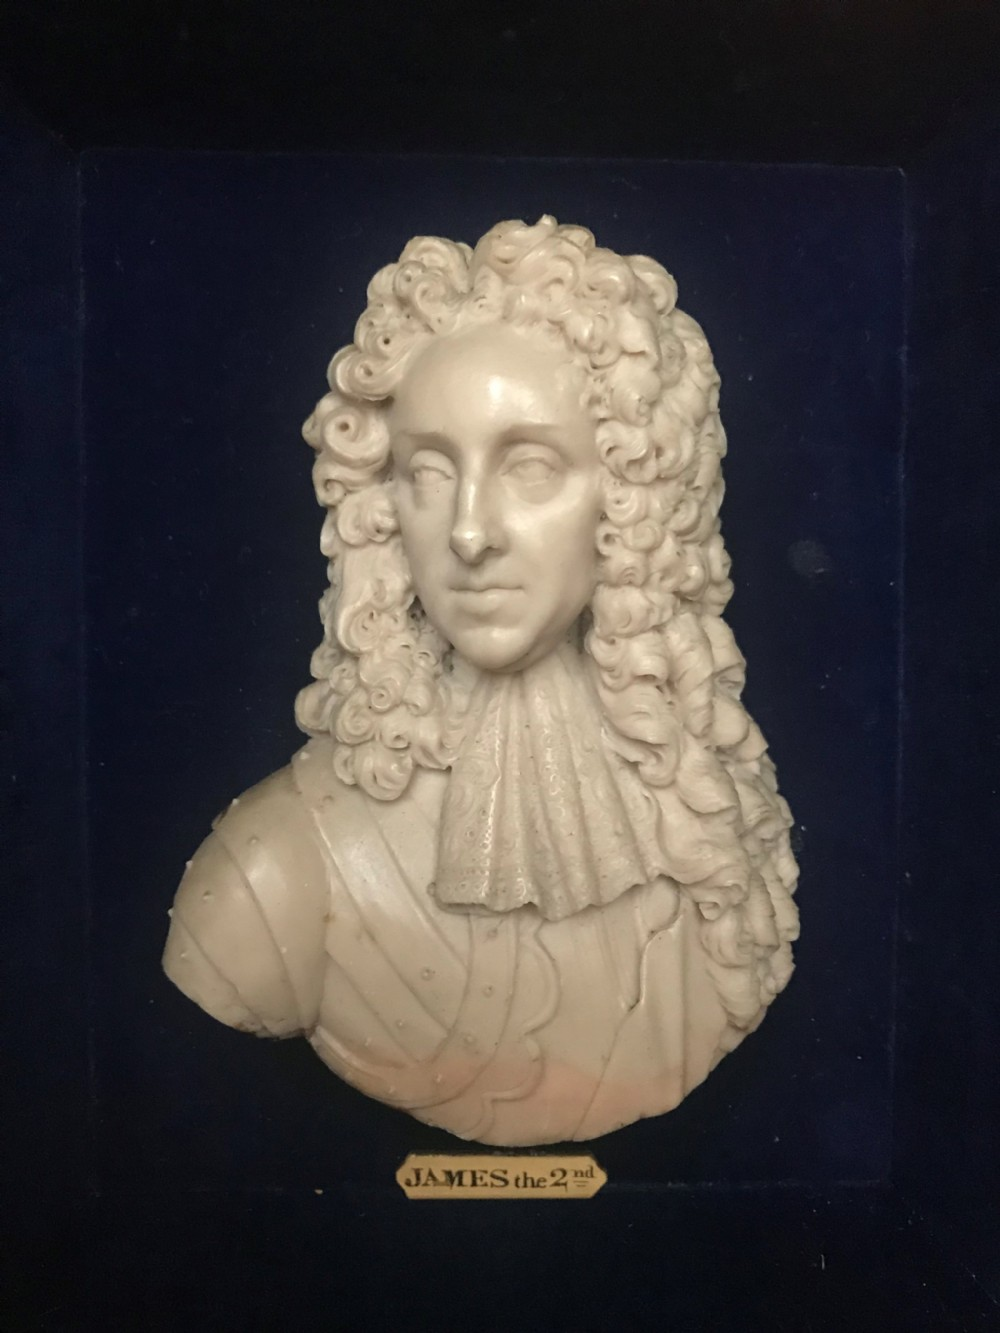 a wax portrait bust of james ii early 18th century in the manner of david le marchand